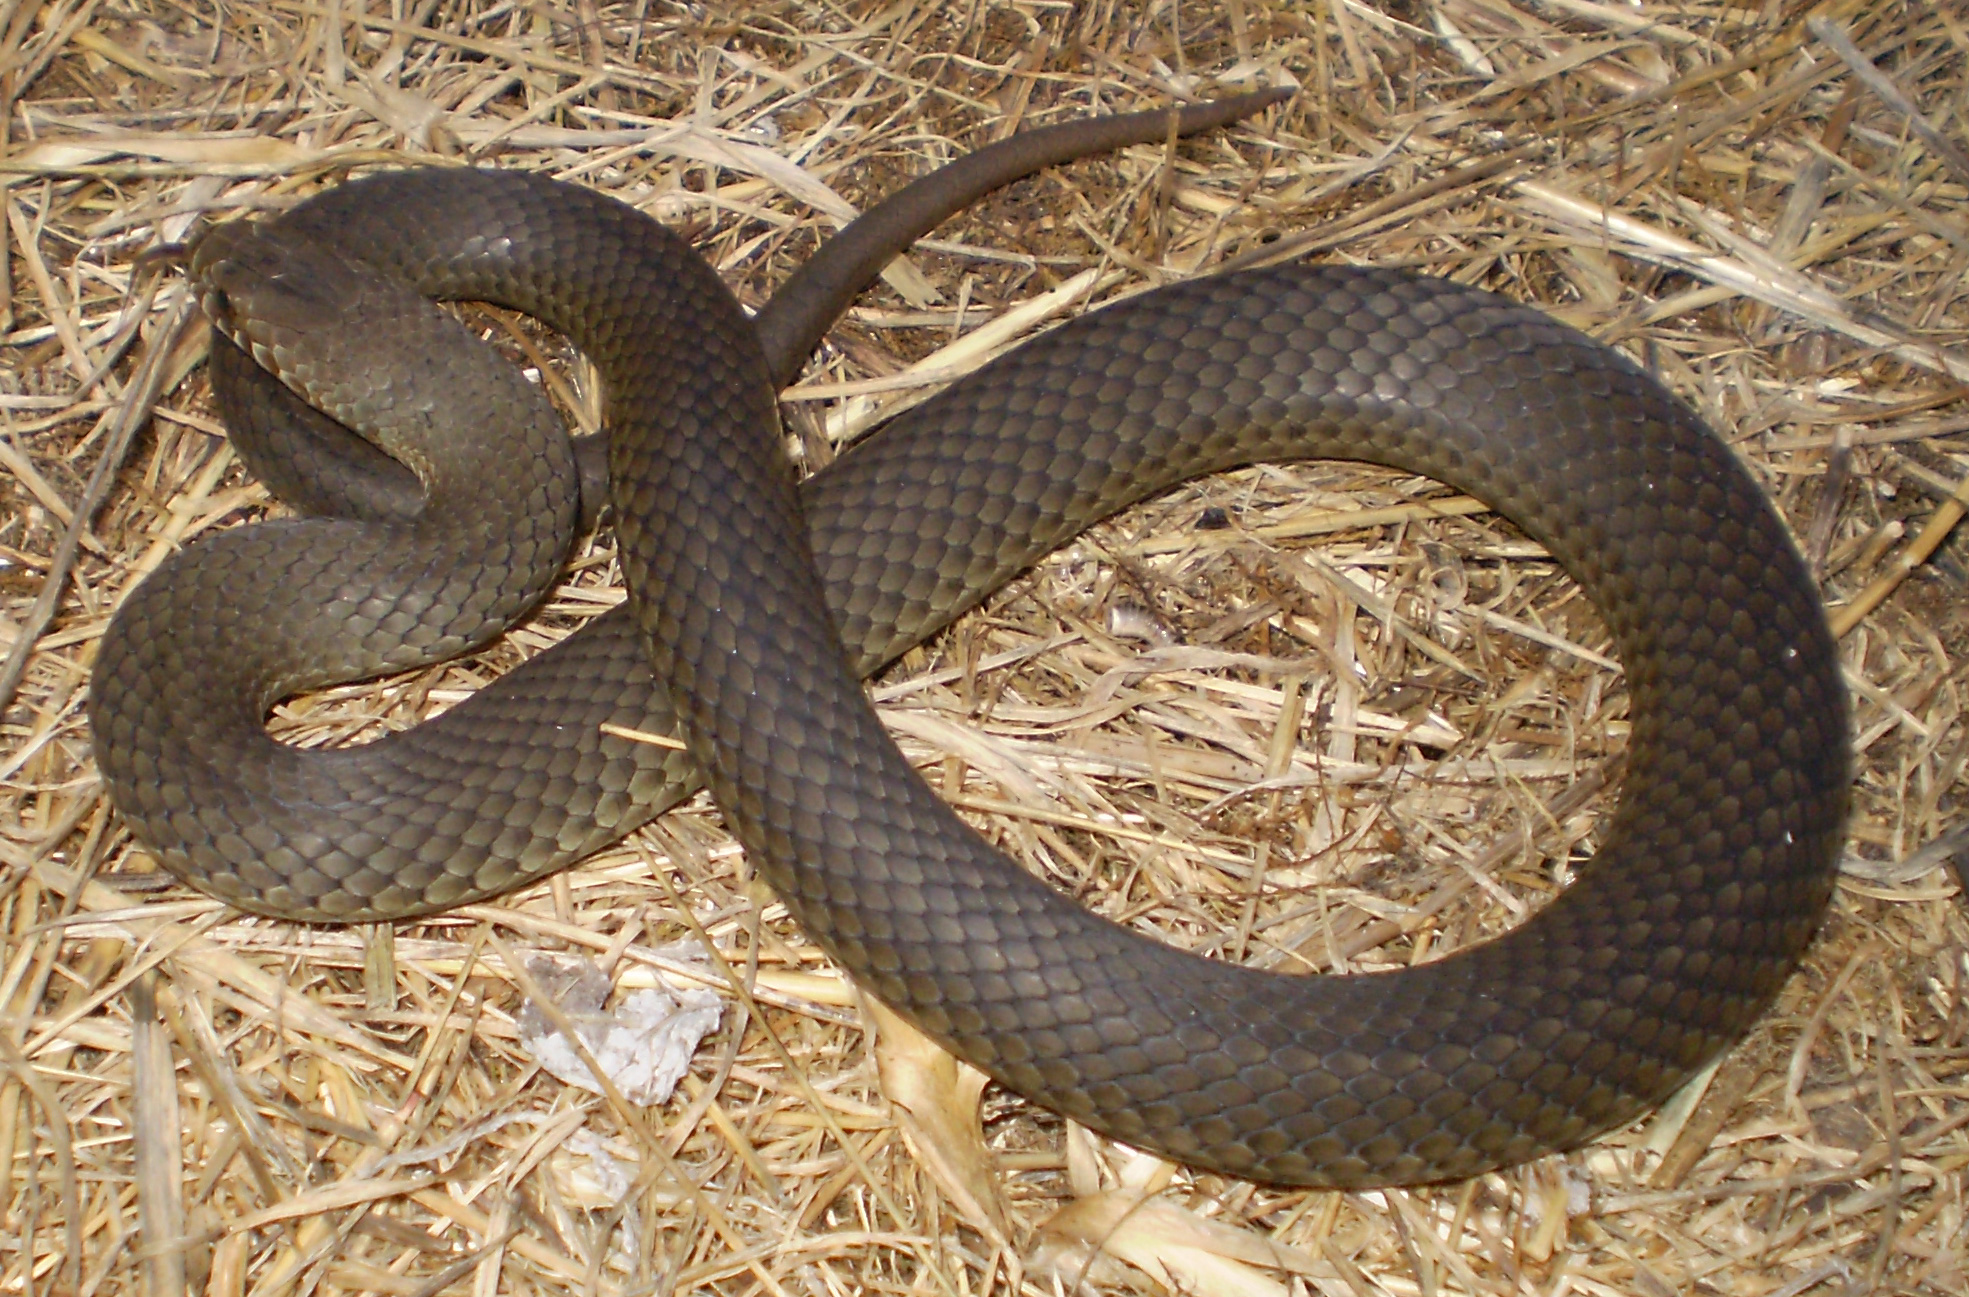 Snakes, Images Pictures, Snakes Wildlife Photos